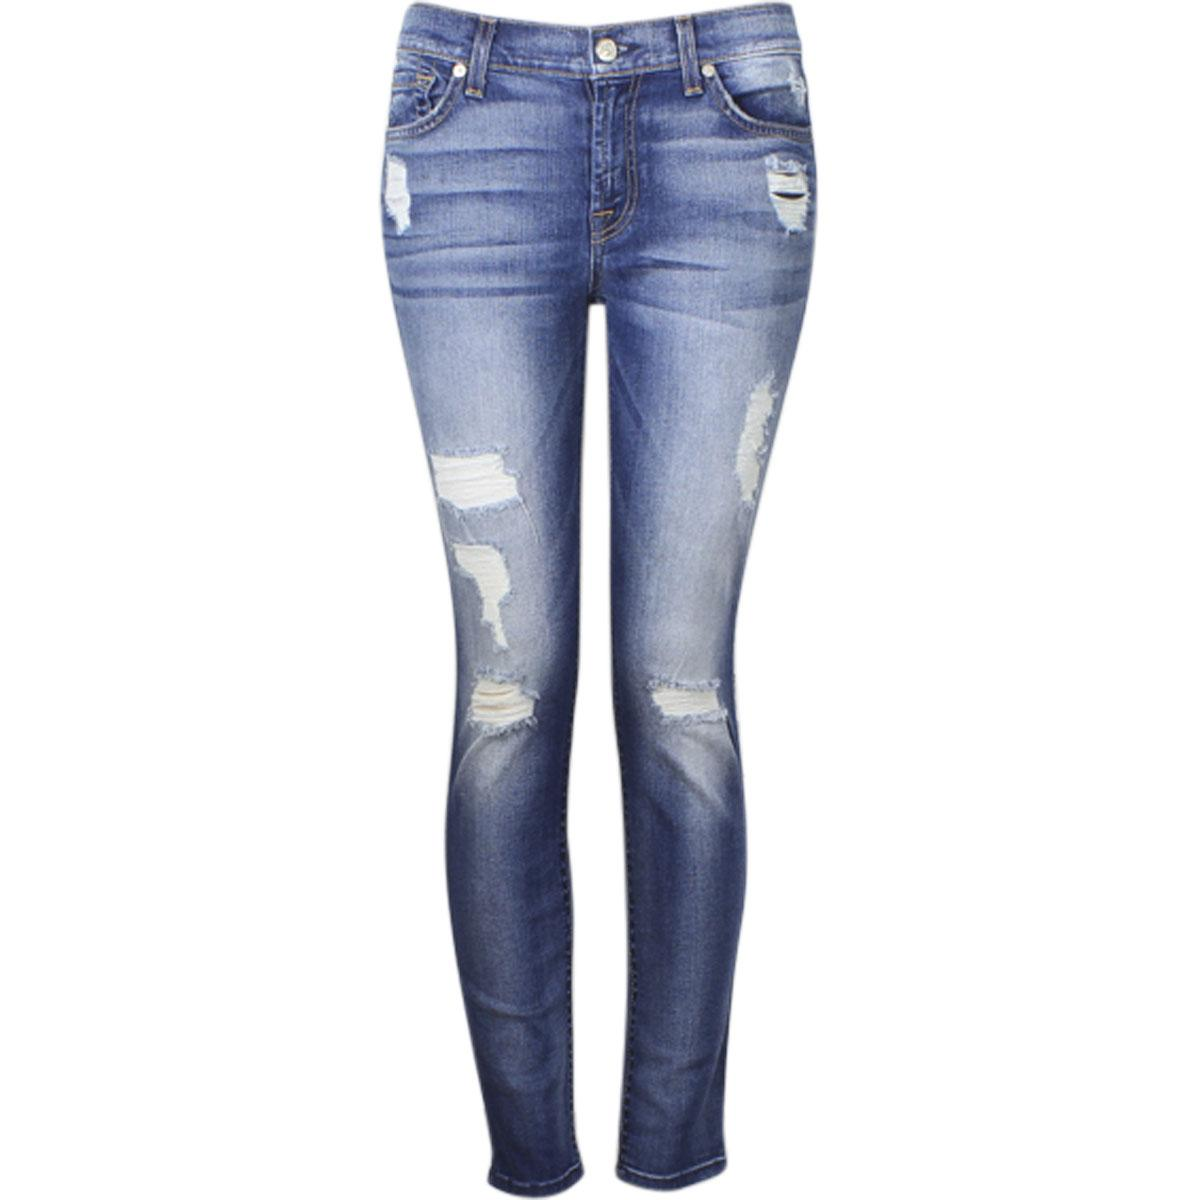 Image of 7 For All Mankind Women's The Ankle Skinny Short Inseam Jeans - Blue - 27 (3/4)